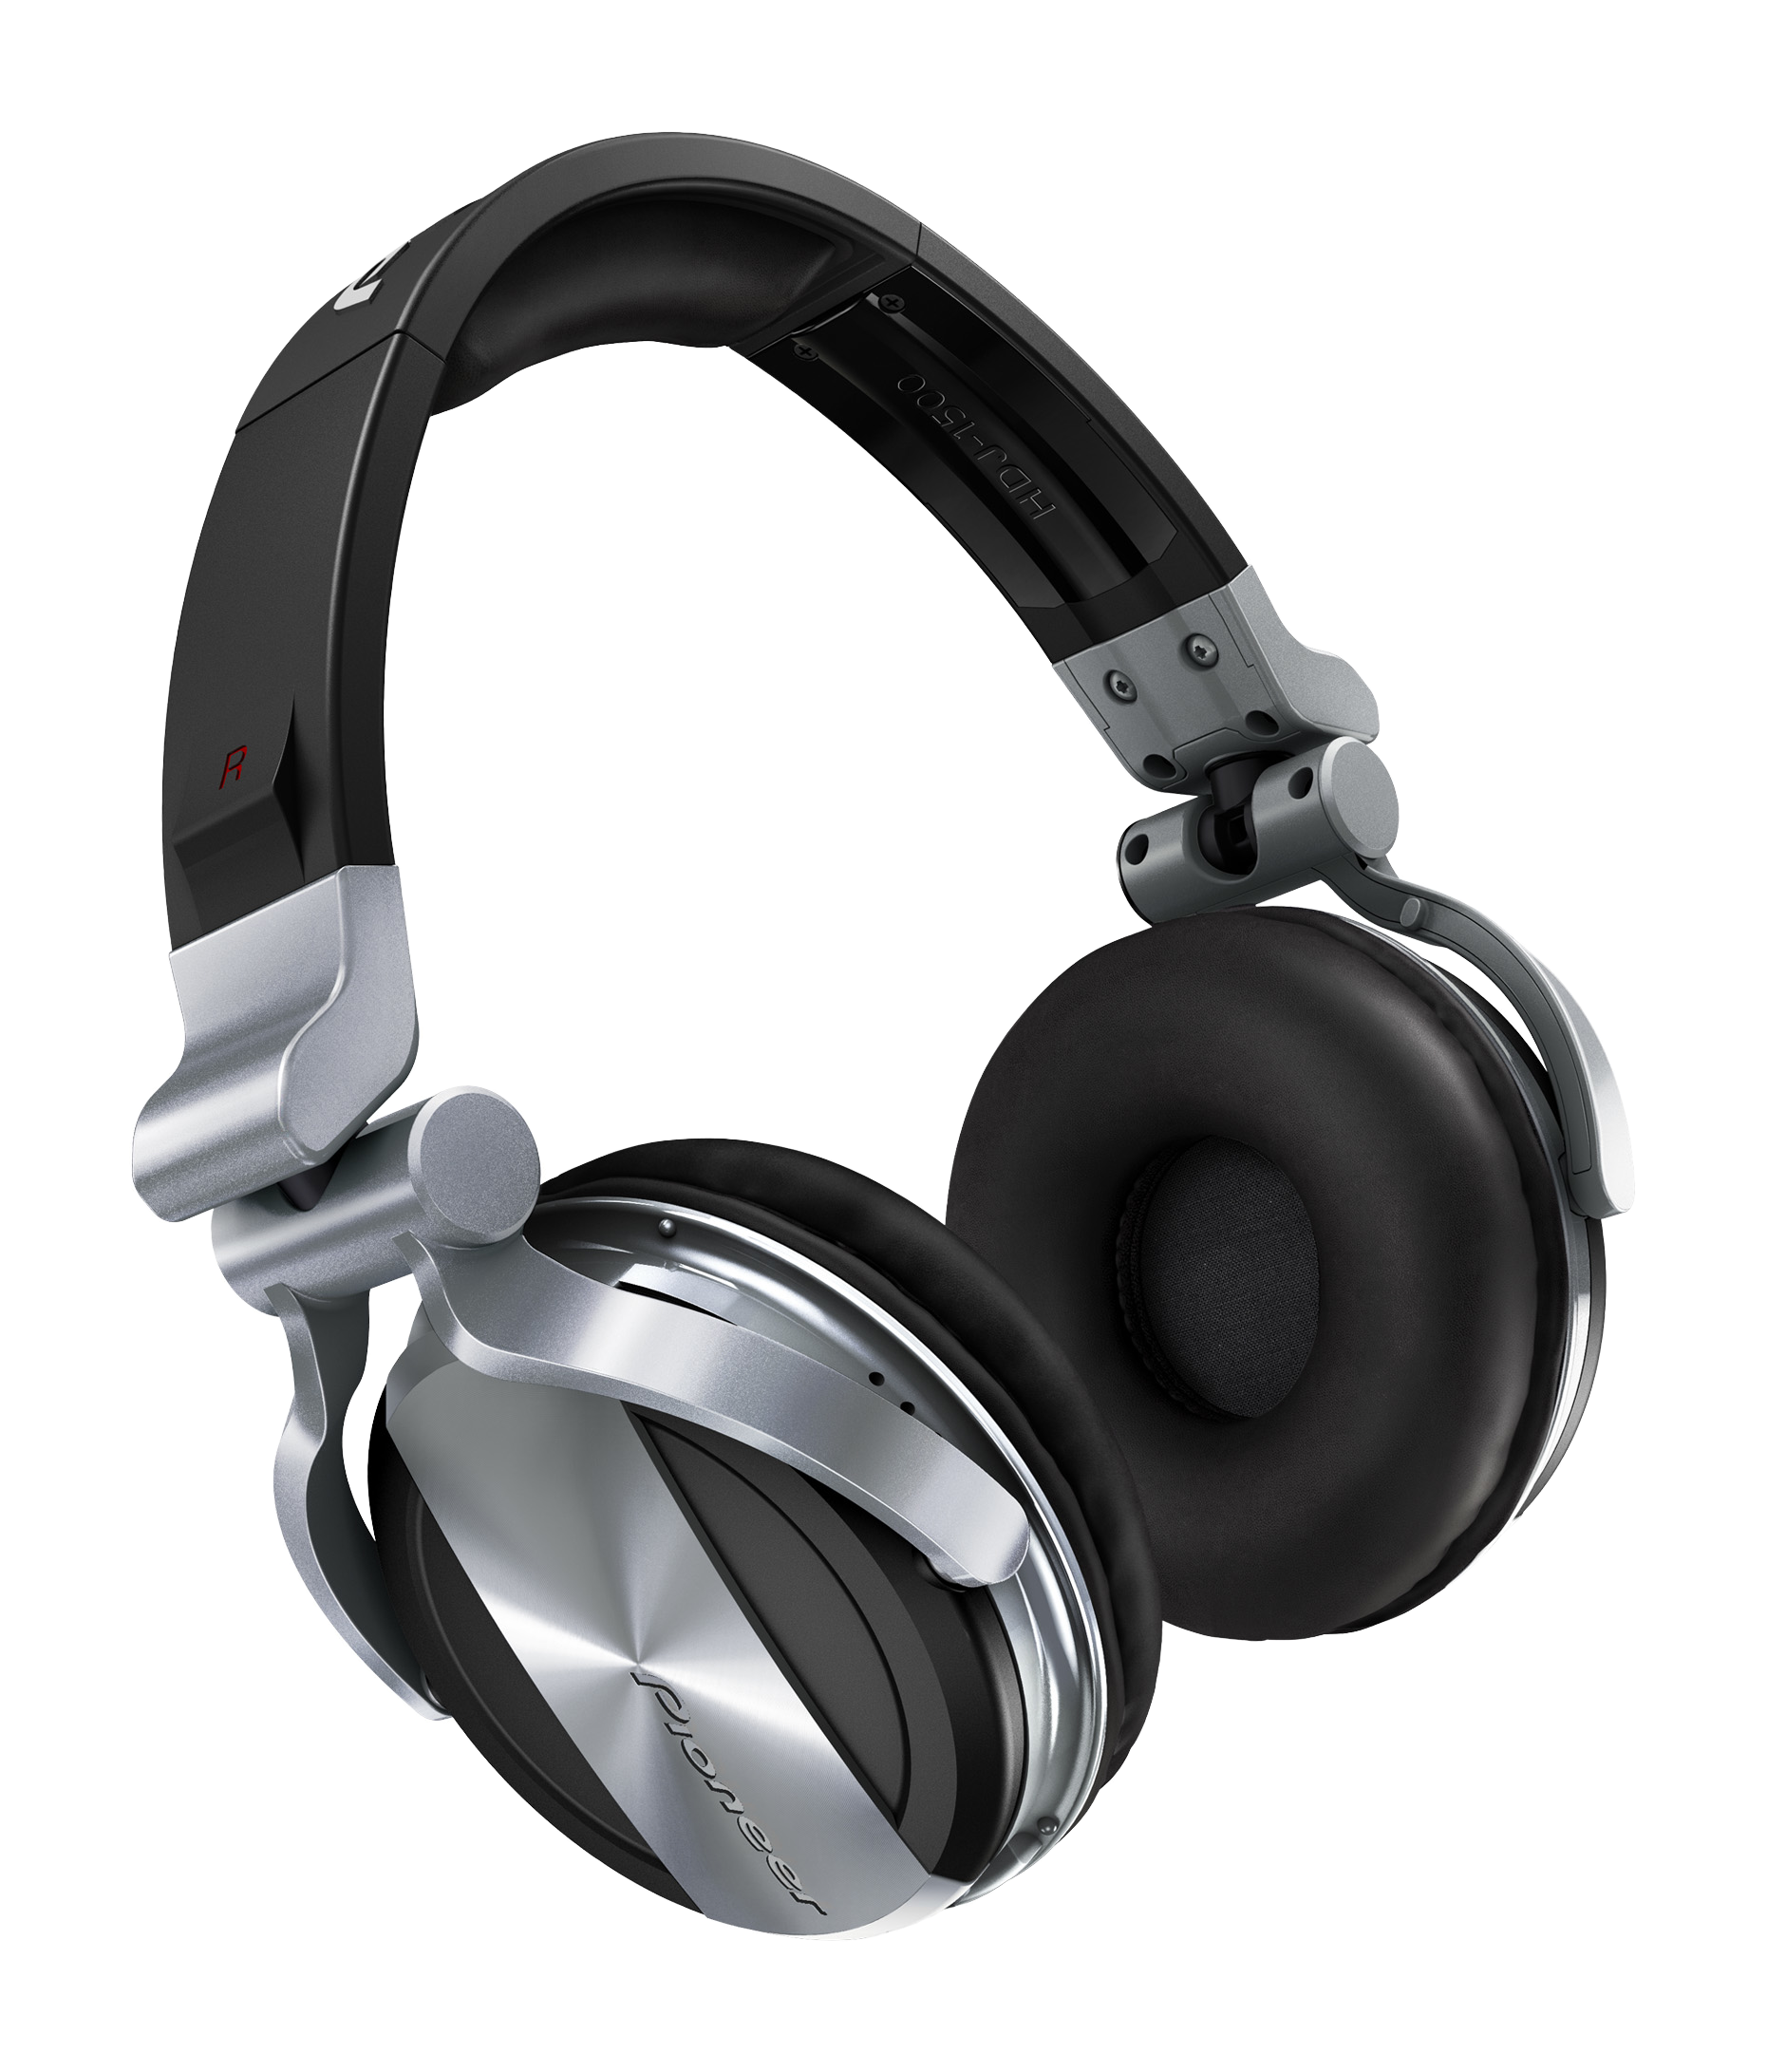 Free Download Headphones Png Images image #20157